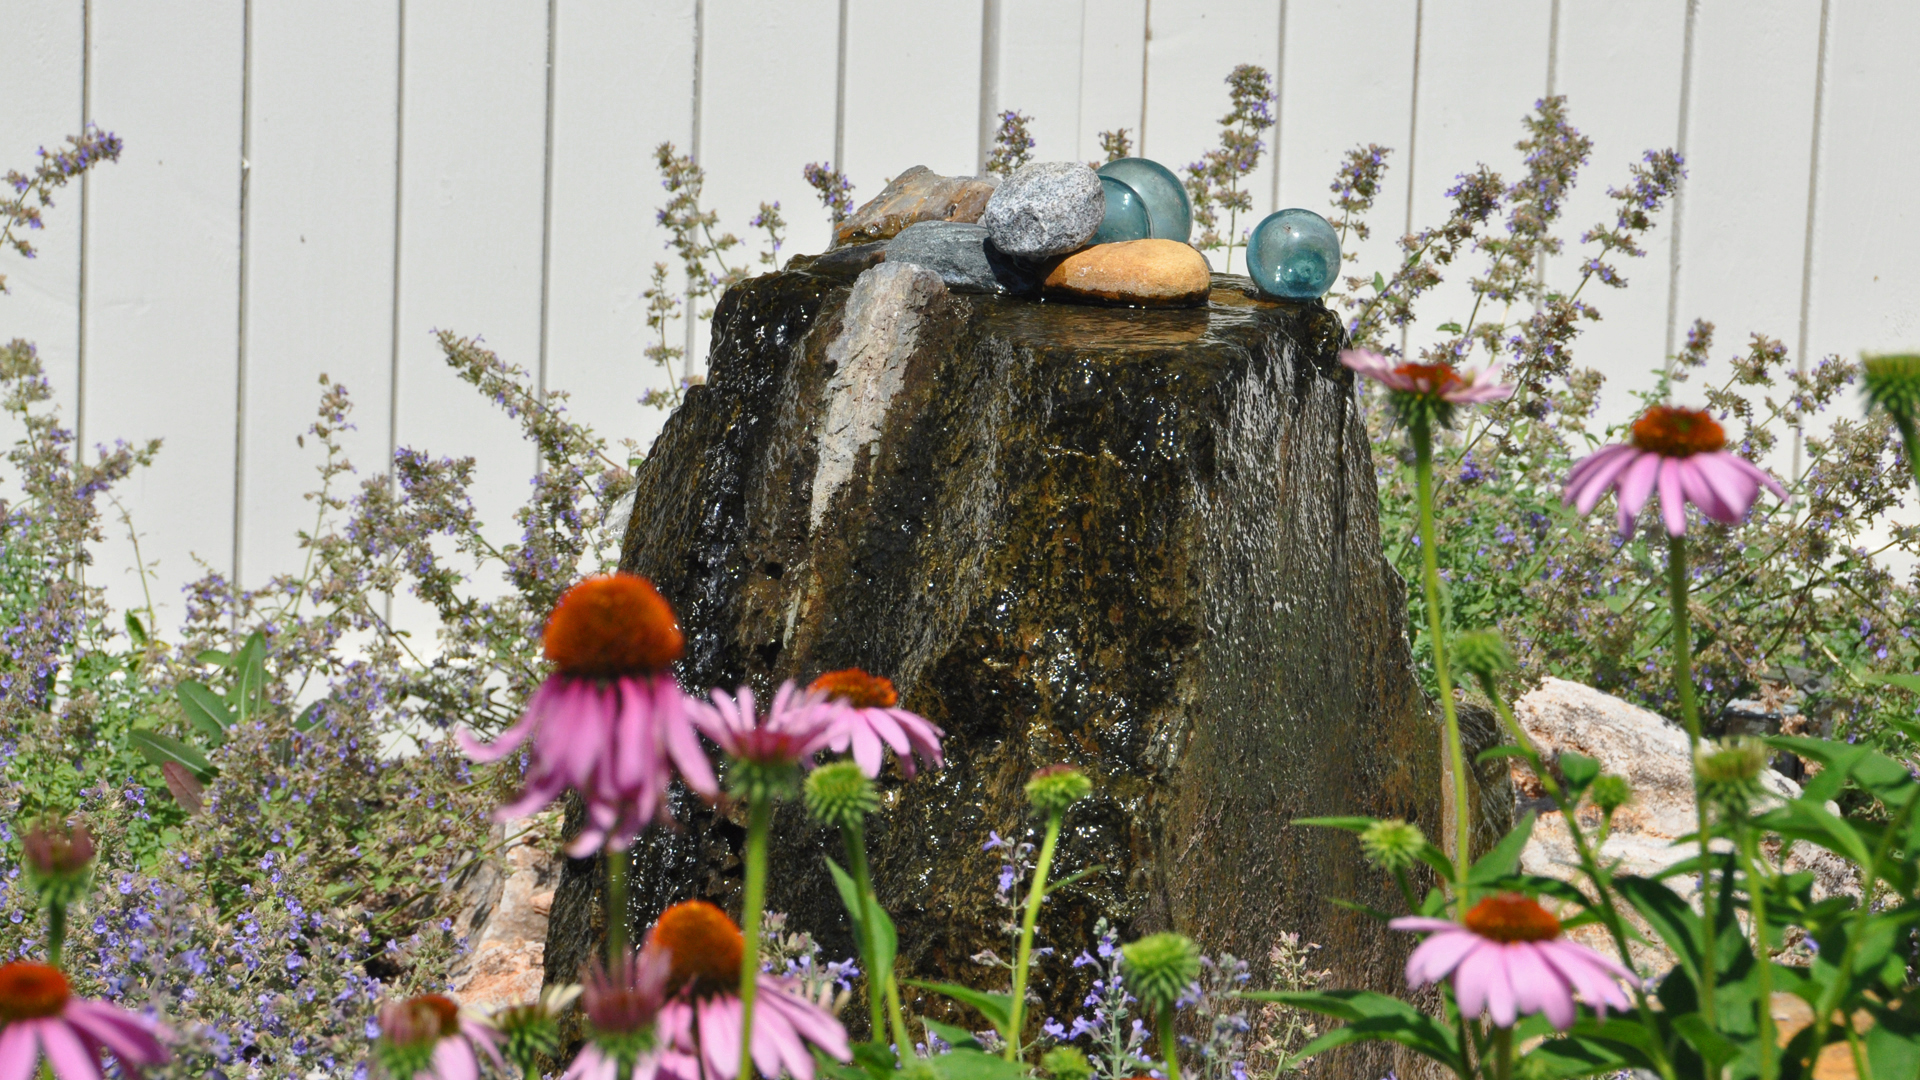 Catmint and coneflowers surround the stone water feature. The gentle sound of the bubbling boulder gives tranquility to the scene.